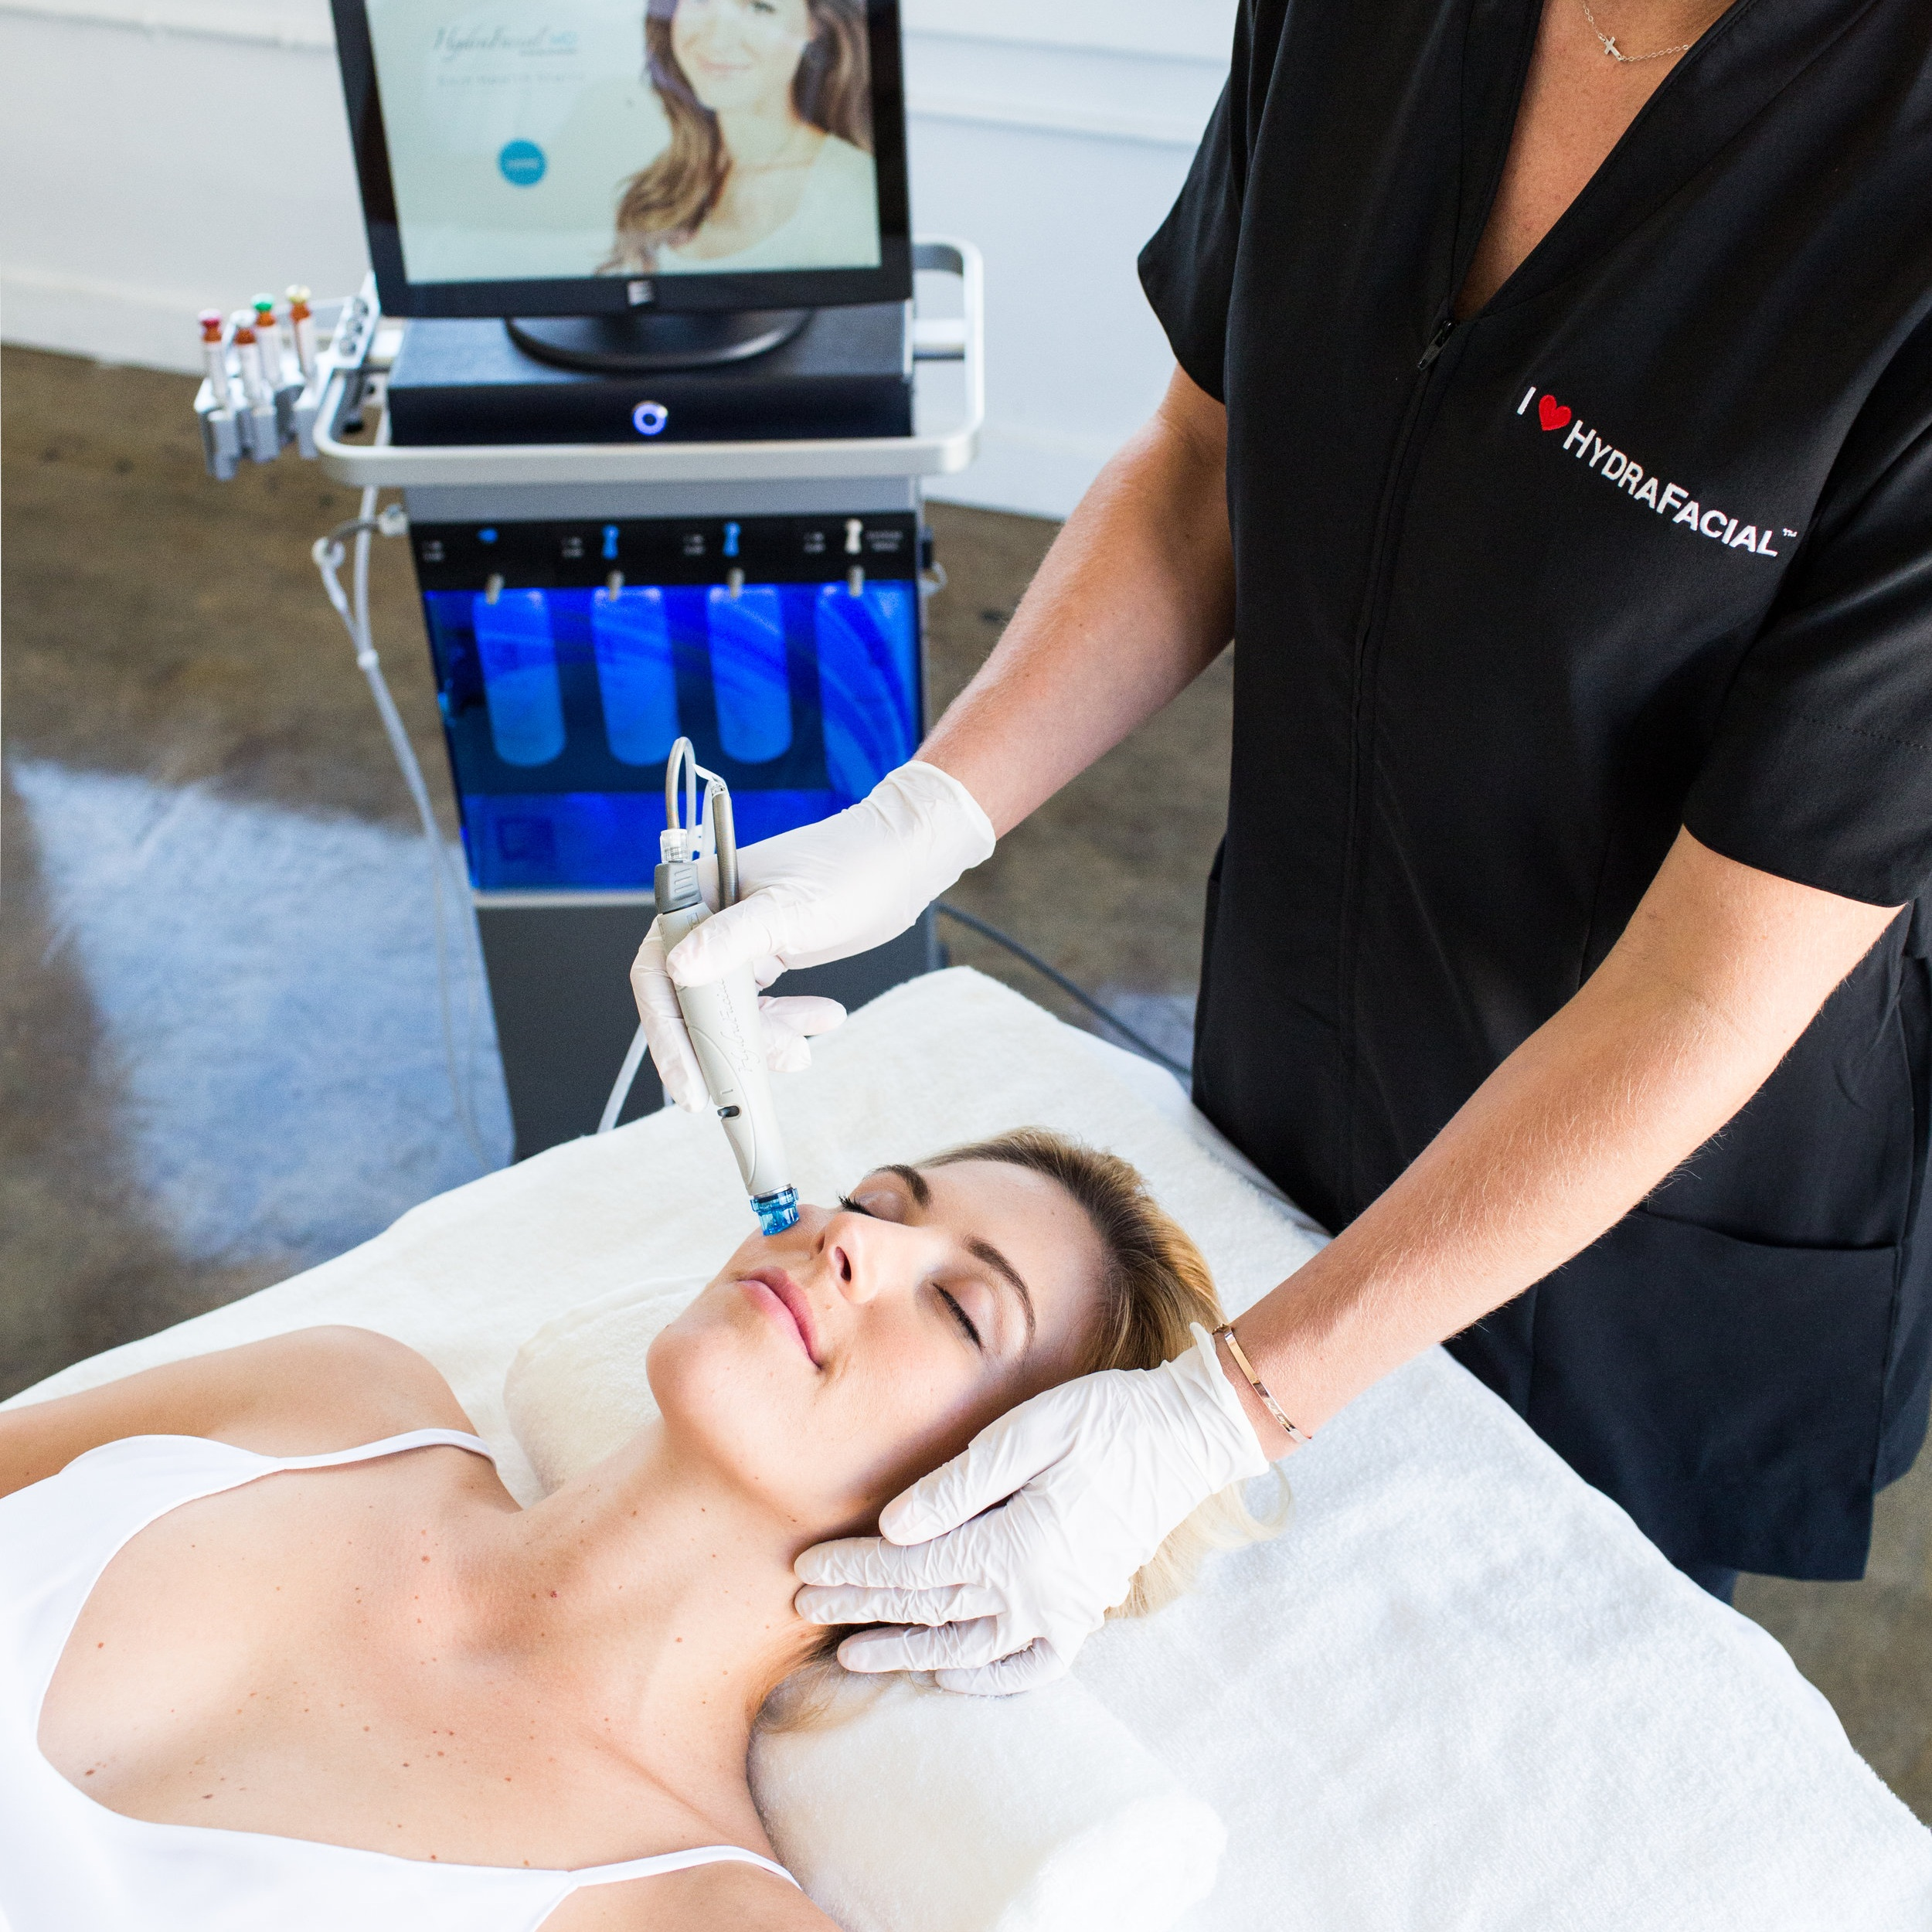 Hydrafacial+MD+treatment+in+Lexington+MA+at+our+med+spa